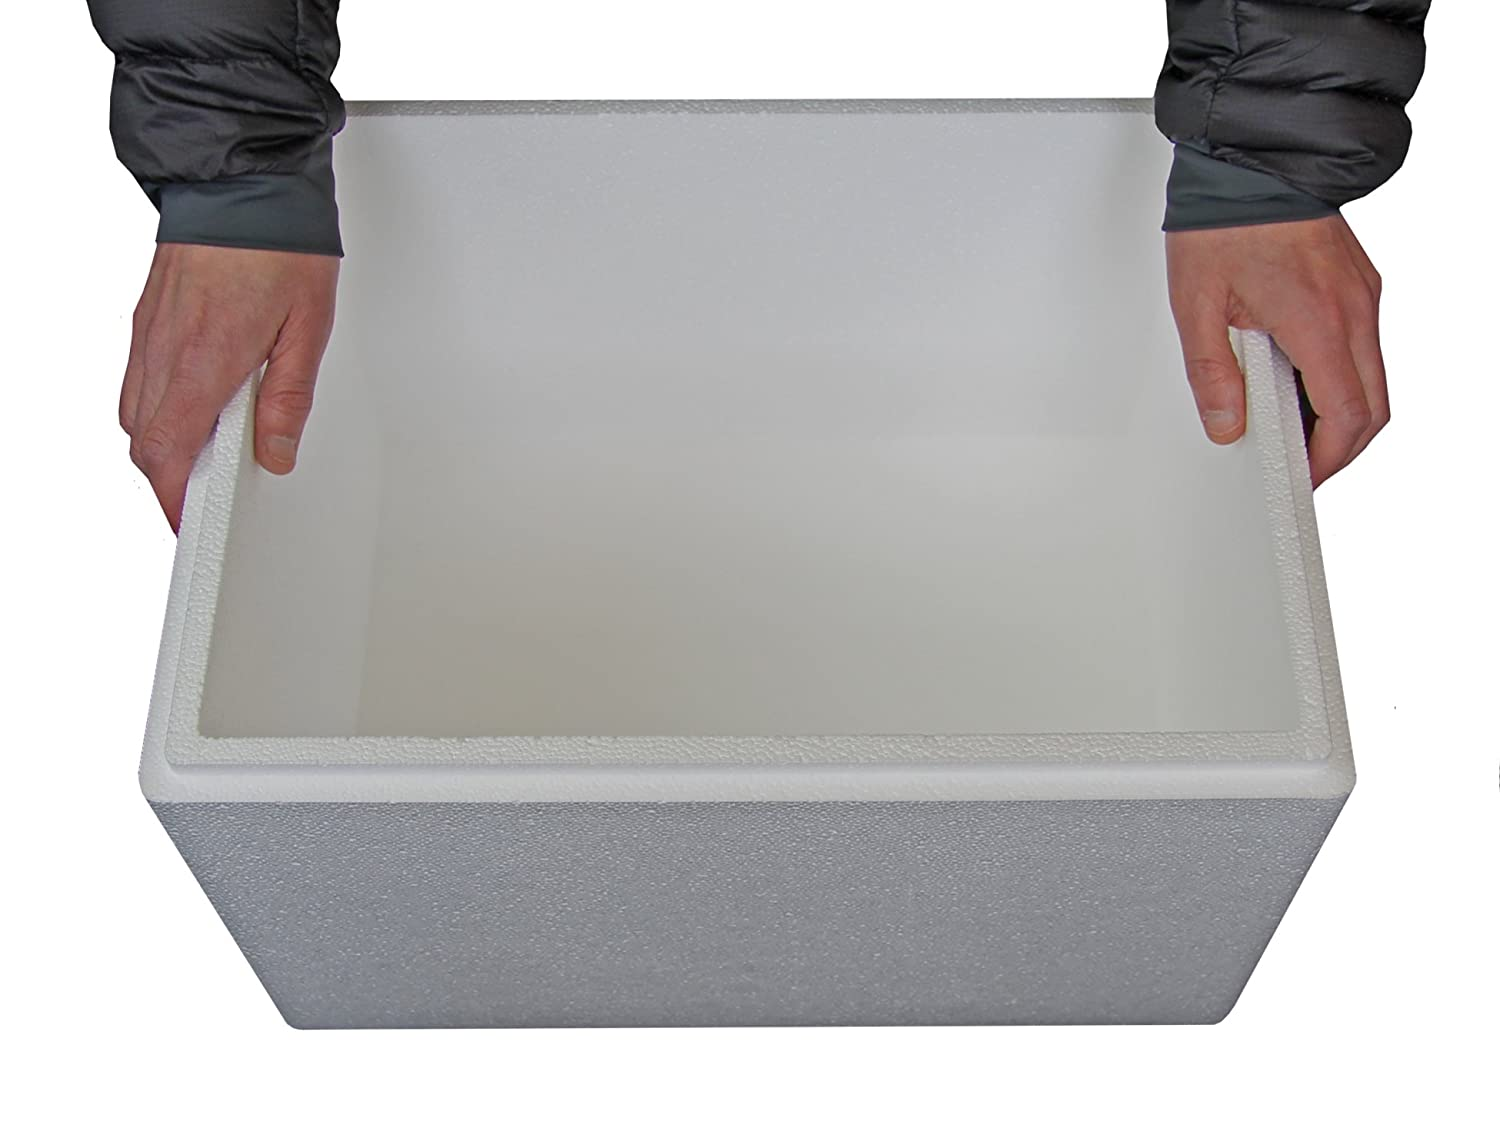 Amazon.com: 34 Ltr Polystyrene Box - Cool Box - Fish Box - QTY 6 by 34 Ltr Polystyrene Box - Cool Box - Fish Box - QTY 6: Home & Kitchen